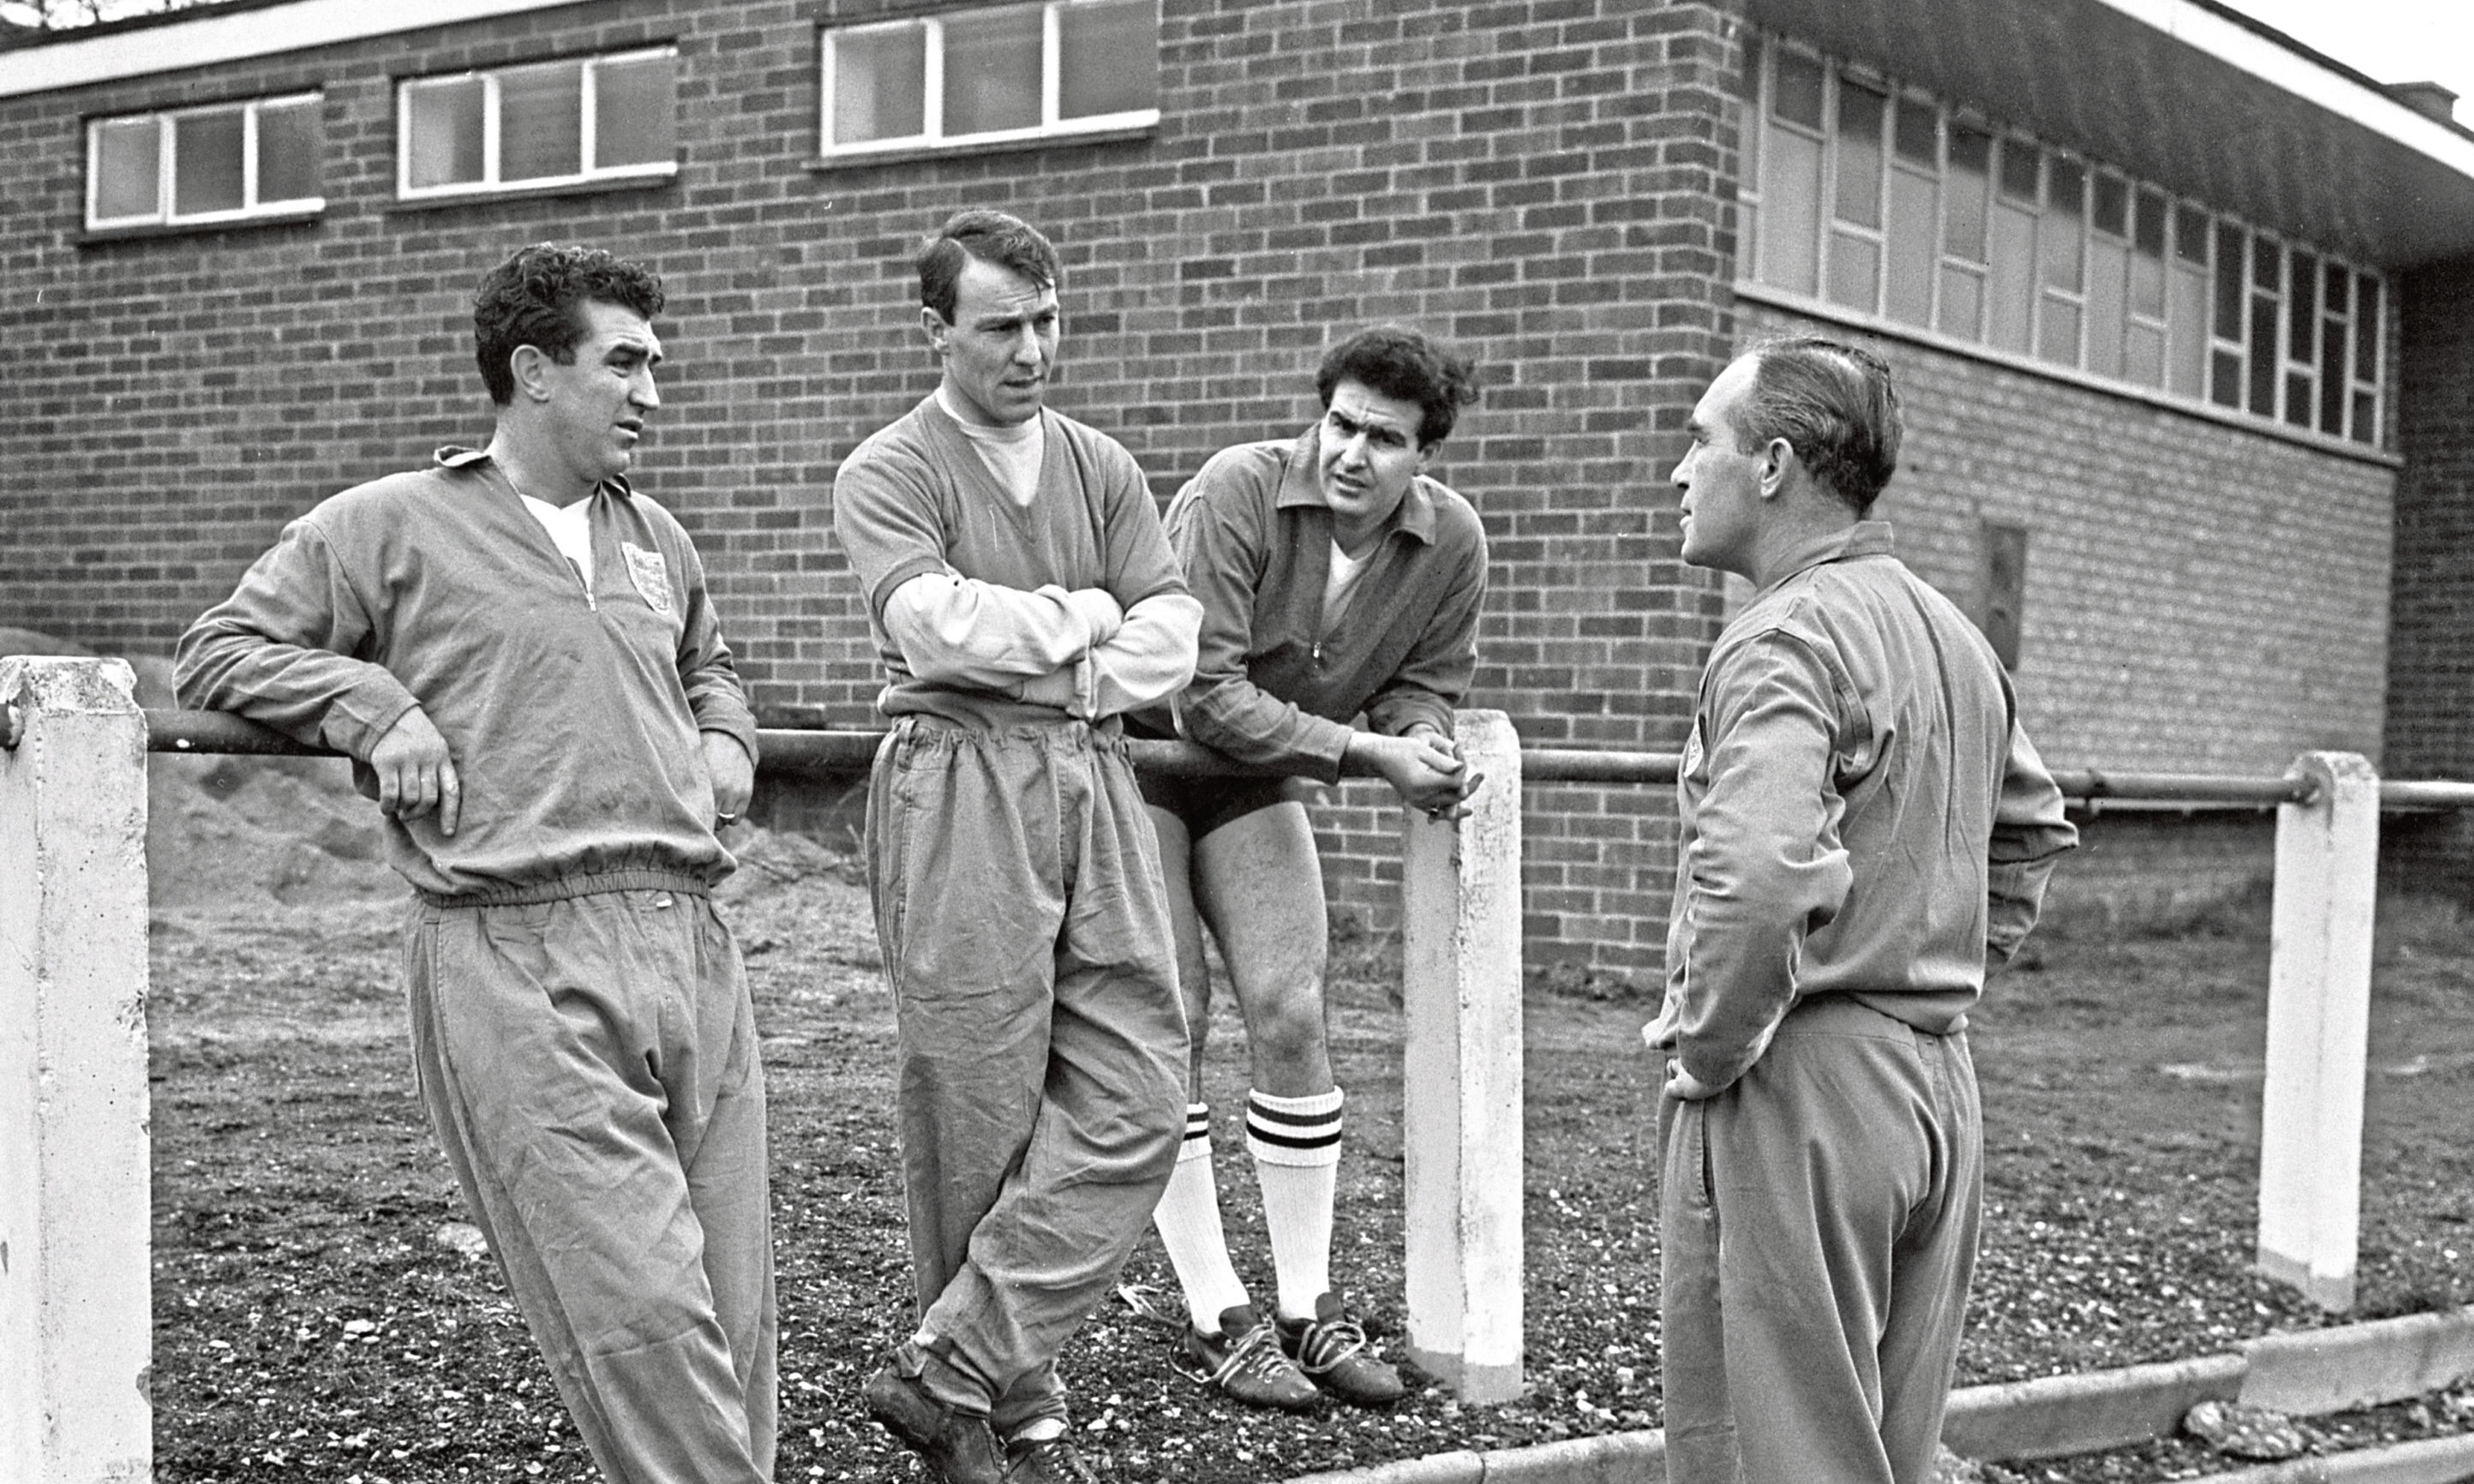 Three England players, Bobby Smith (left) Jimmy Greaves (centre) and Maurice Norman (right) are pictured talking to manager Alf Ramsey before the international match against Scotland.